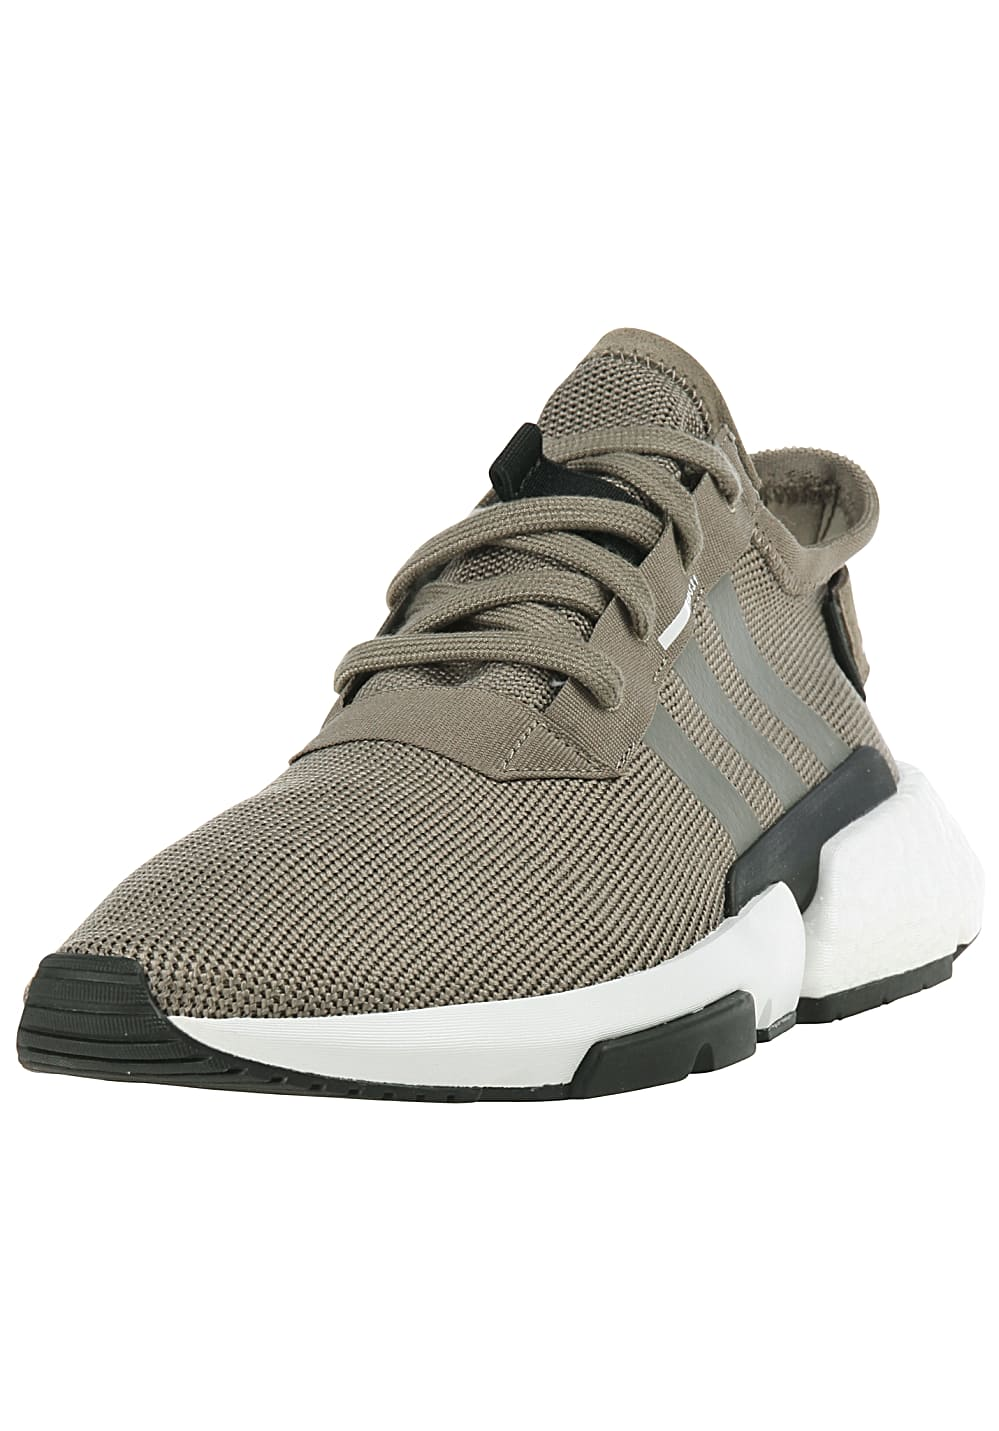 ADIDAS ORIGINALS POD S3.1 Sneakers for Men Green